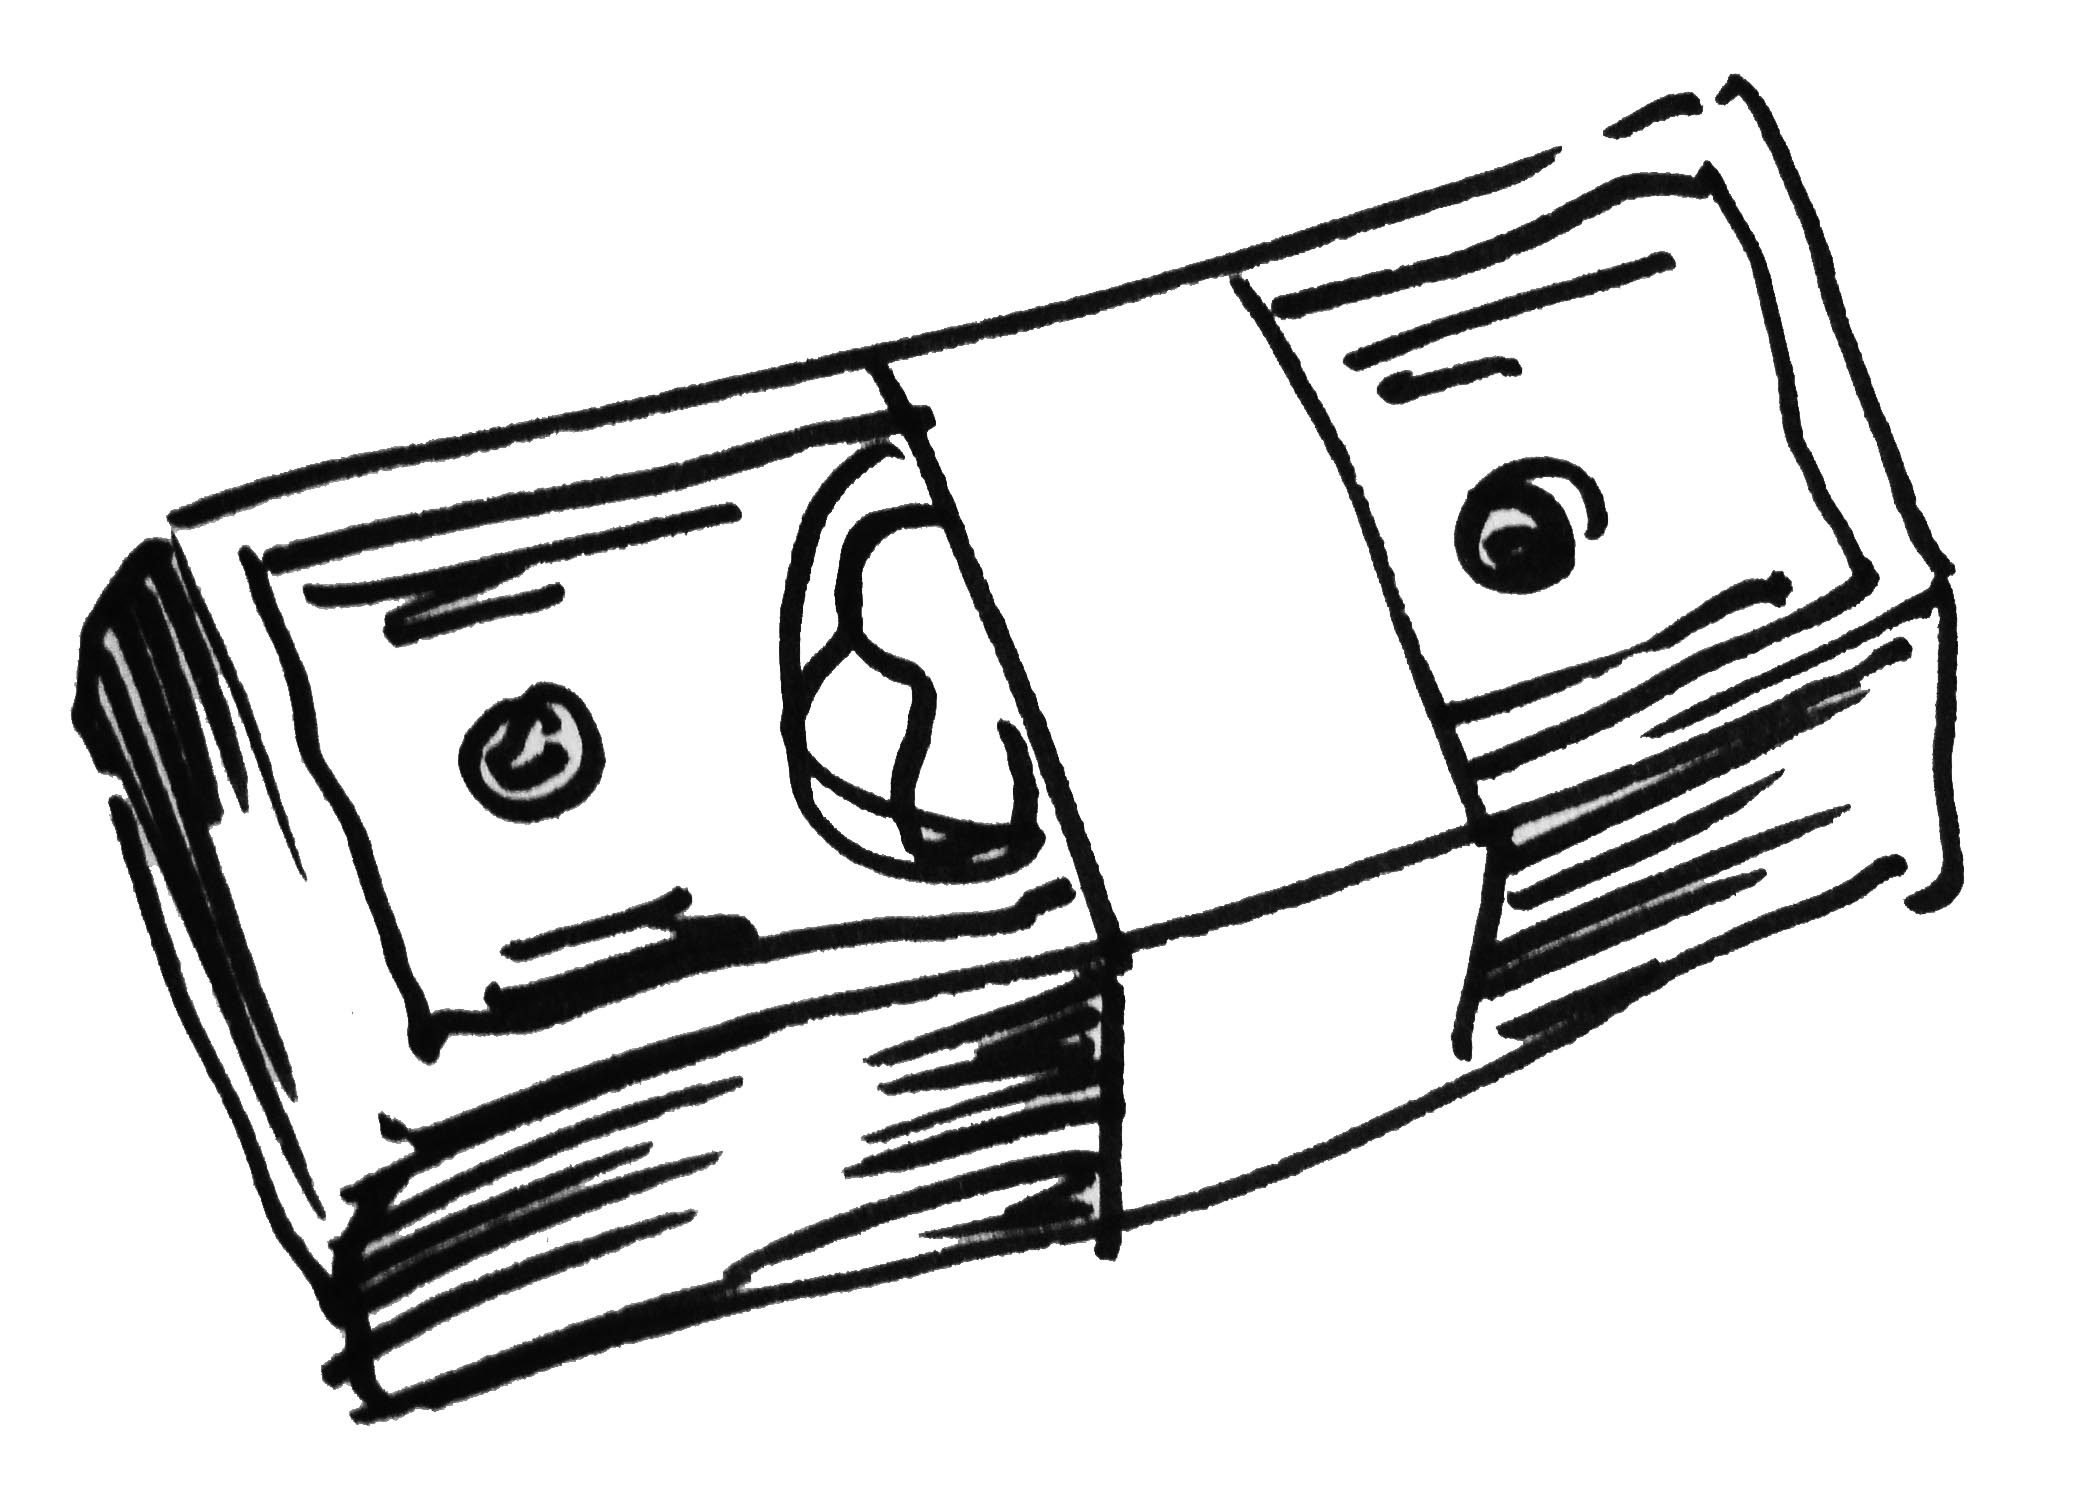 Cash clipart line. Drawing at getdrawings com